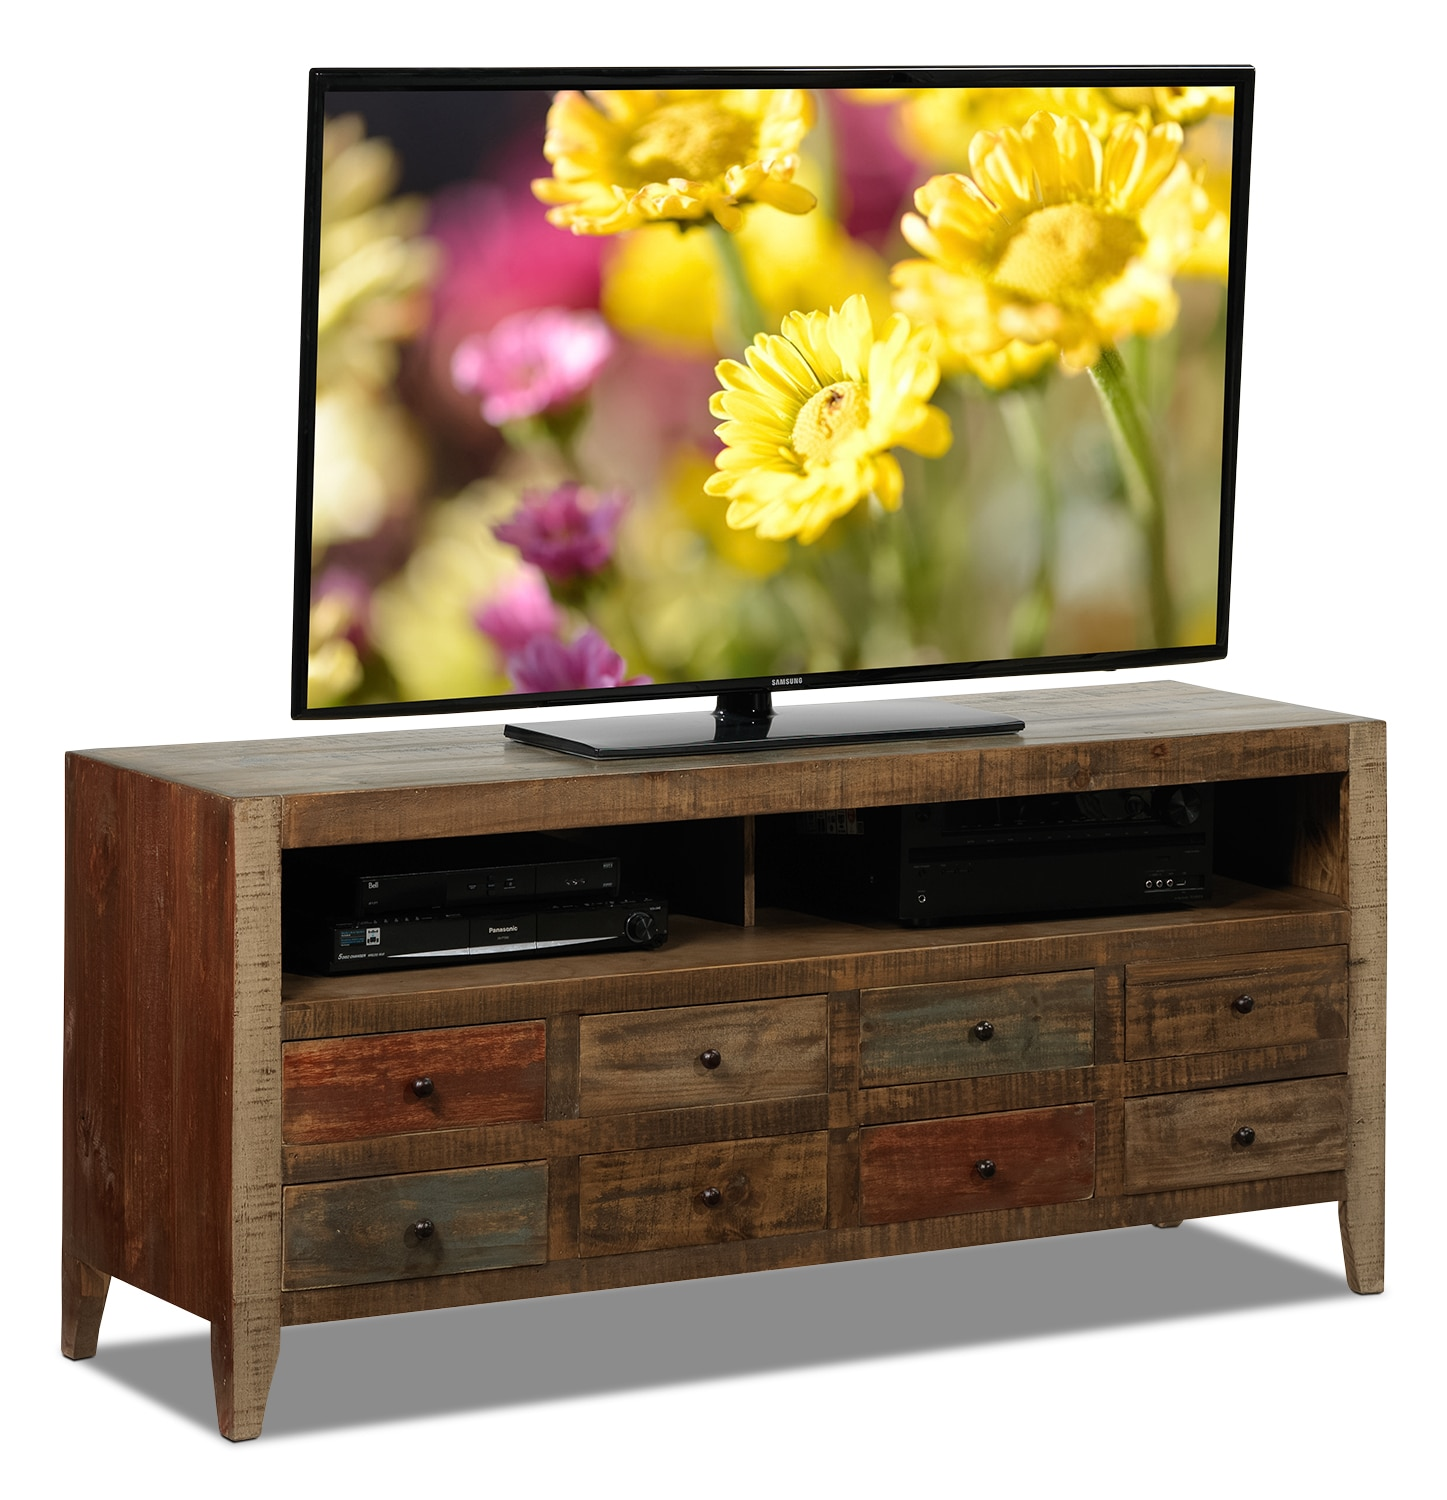 Entertainment Furniture - Auckland TV Stand - Rustic Brown